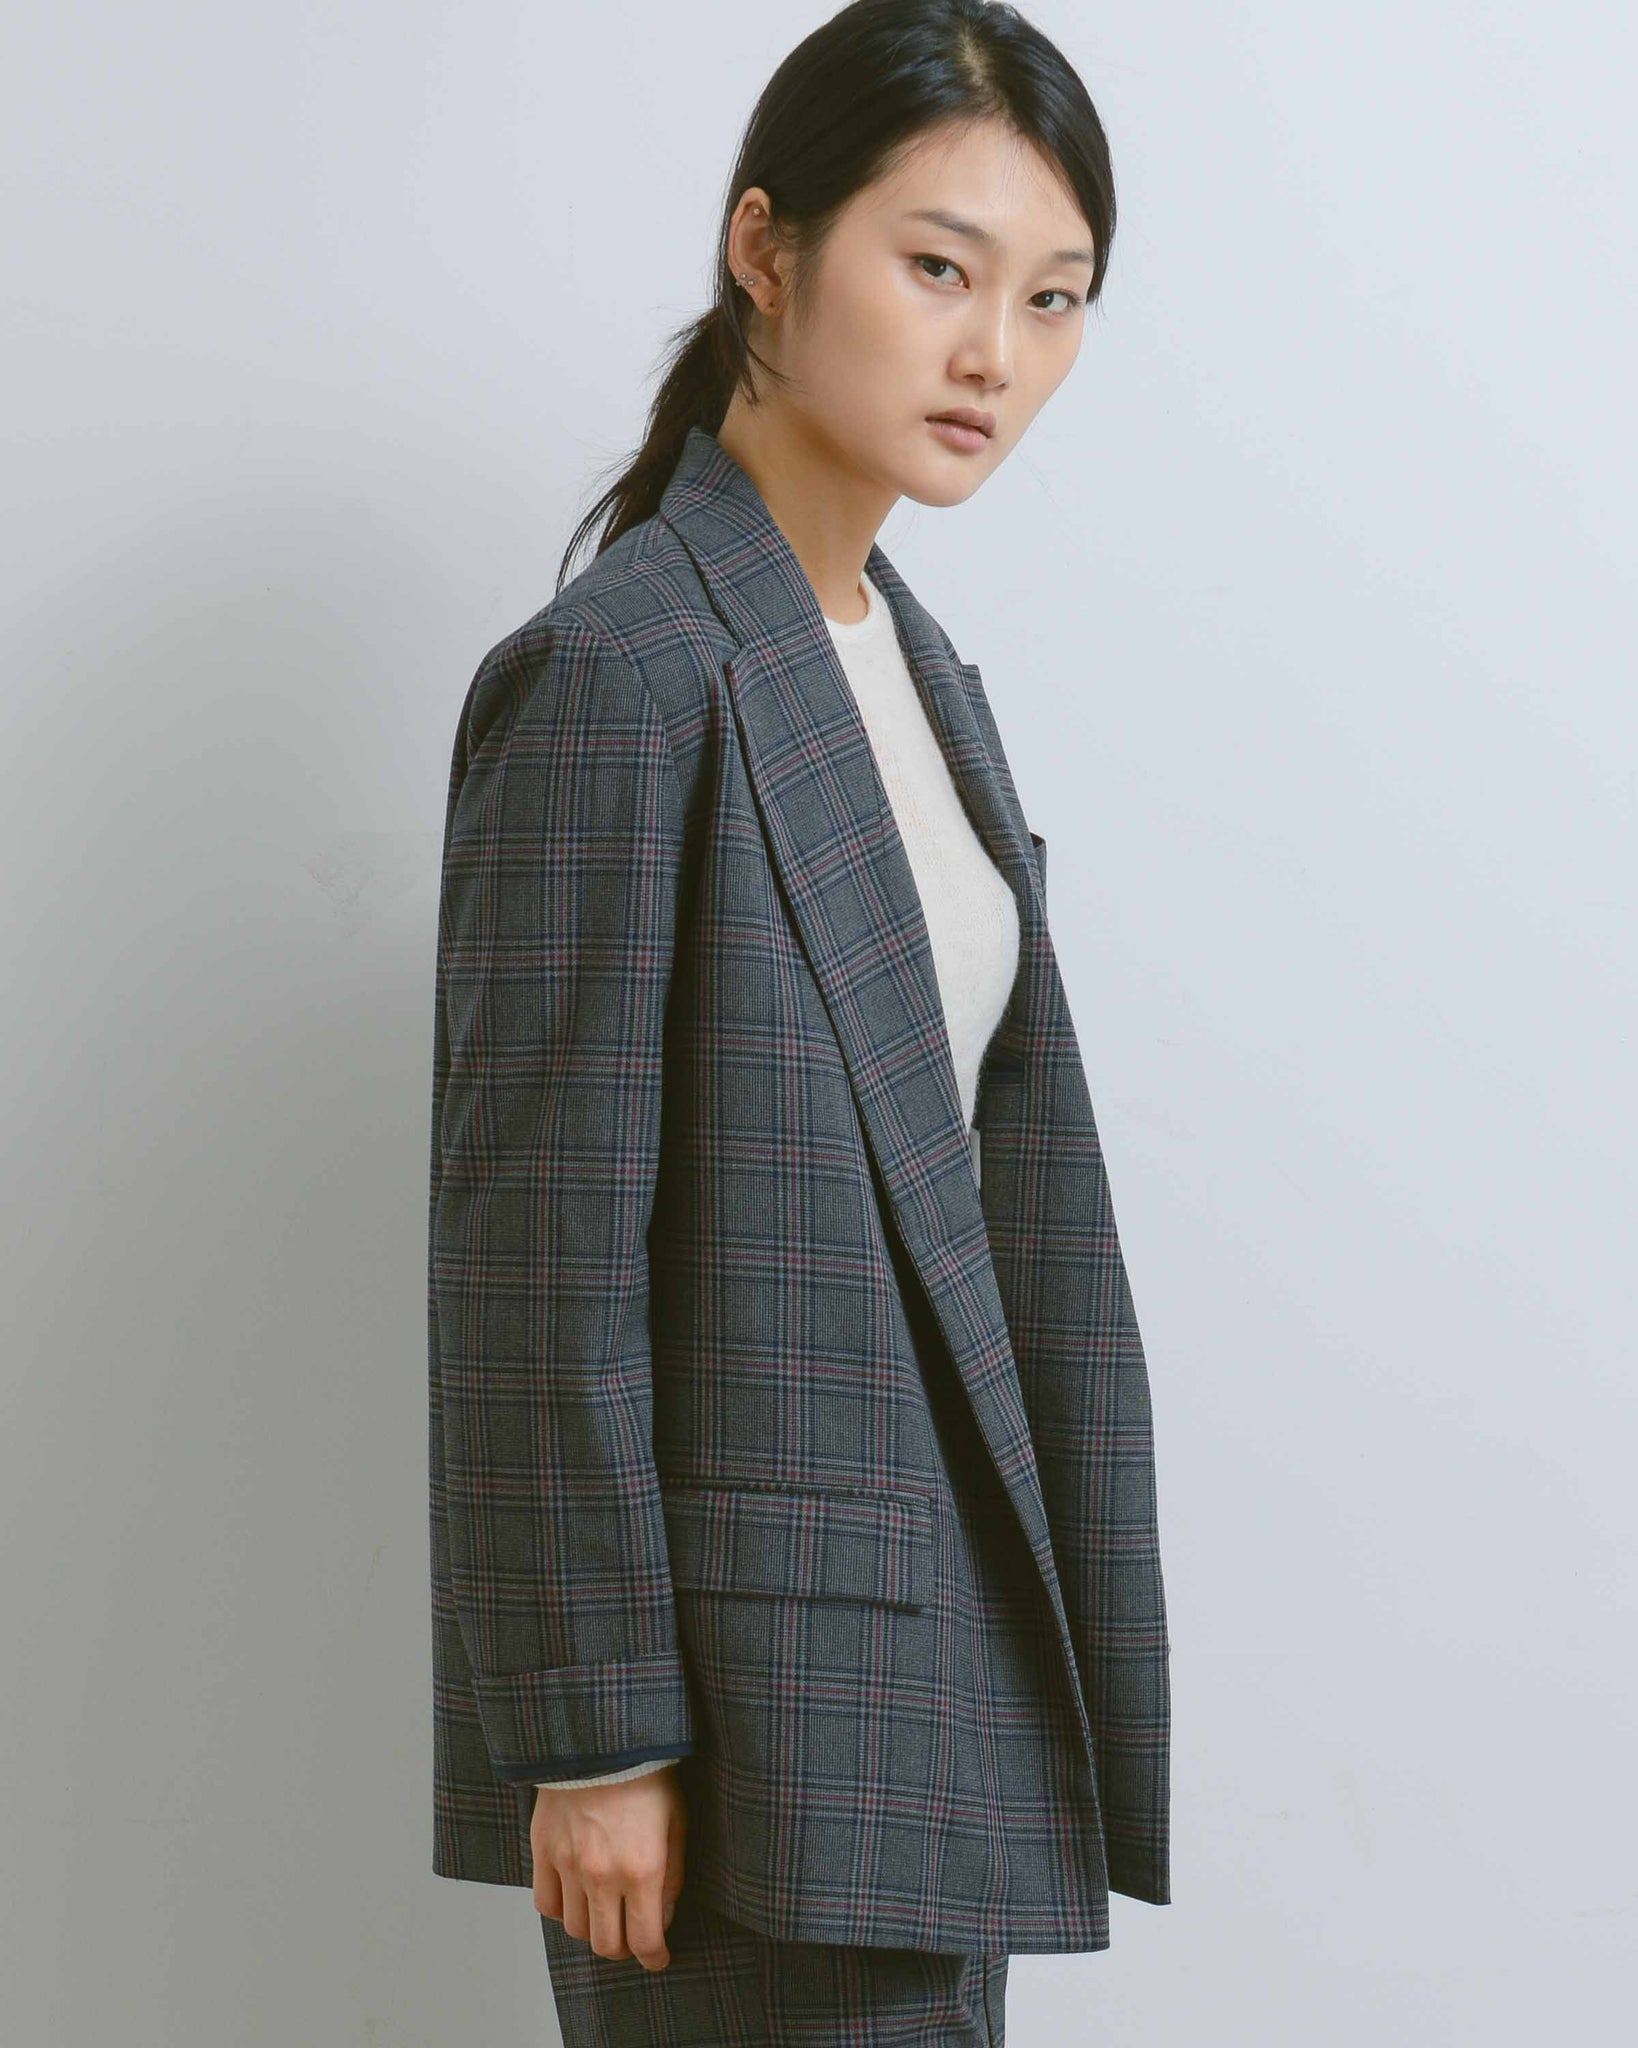 Charcoal Oversized Plaid Jacket